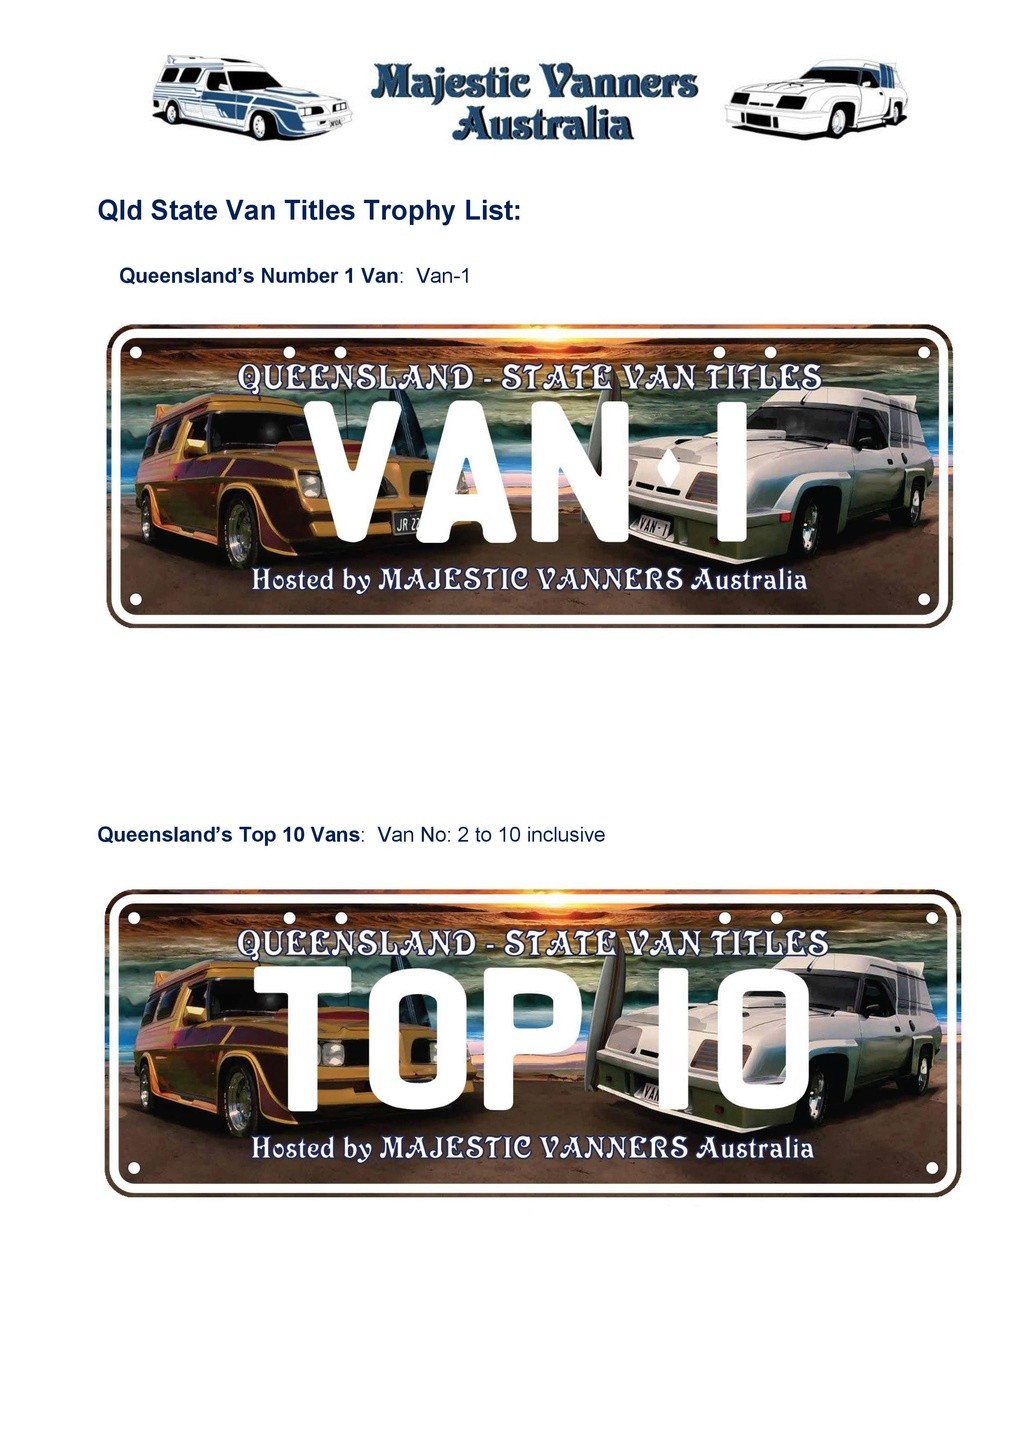 2017 Van-In #06 Albury/Wodonga; #02 Hervey Bay: 29th September to 2nd October. - Page 2 2017_v16